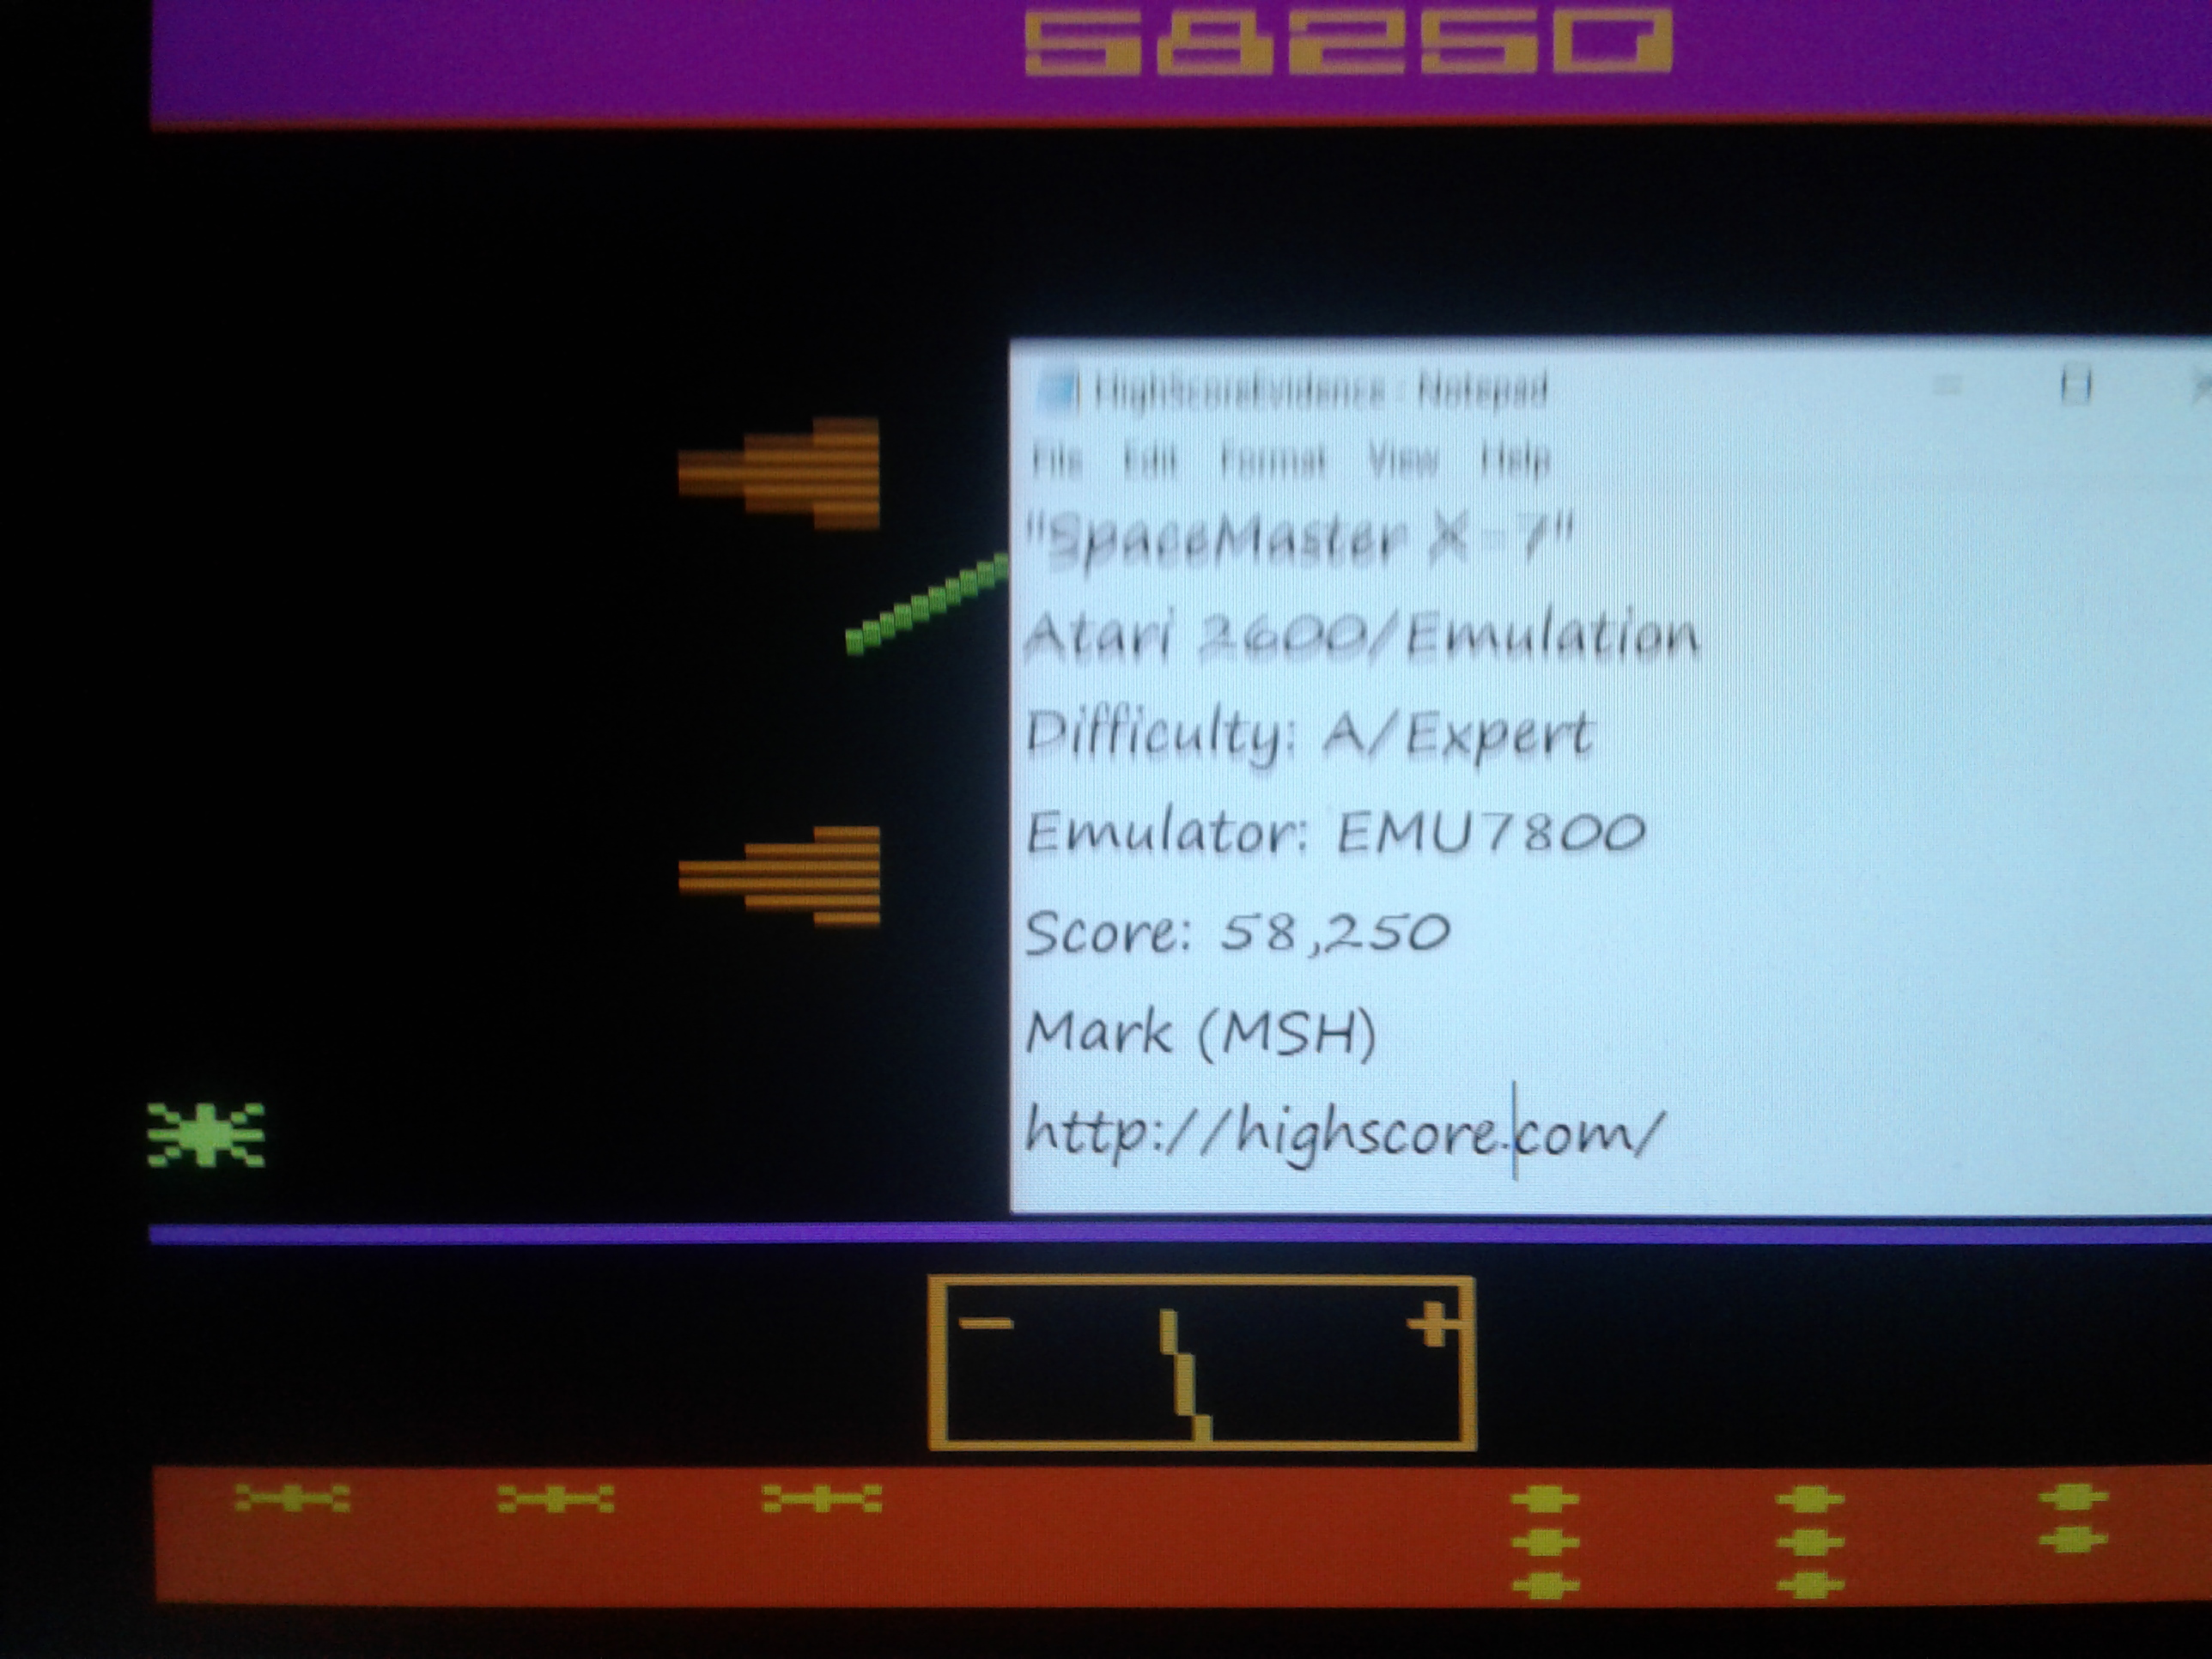 Mark: Spacemaster X-7 (Atari 2600 Emulated Expert/A Mode) 58,250 points on 2019-01-13 20:43:06